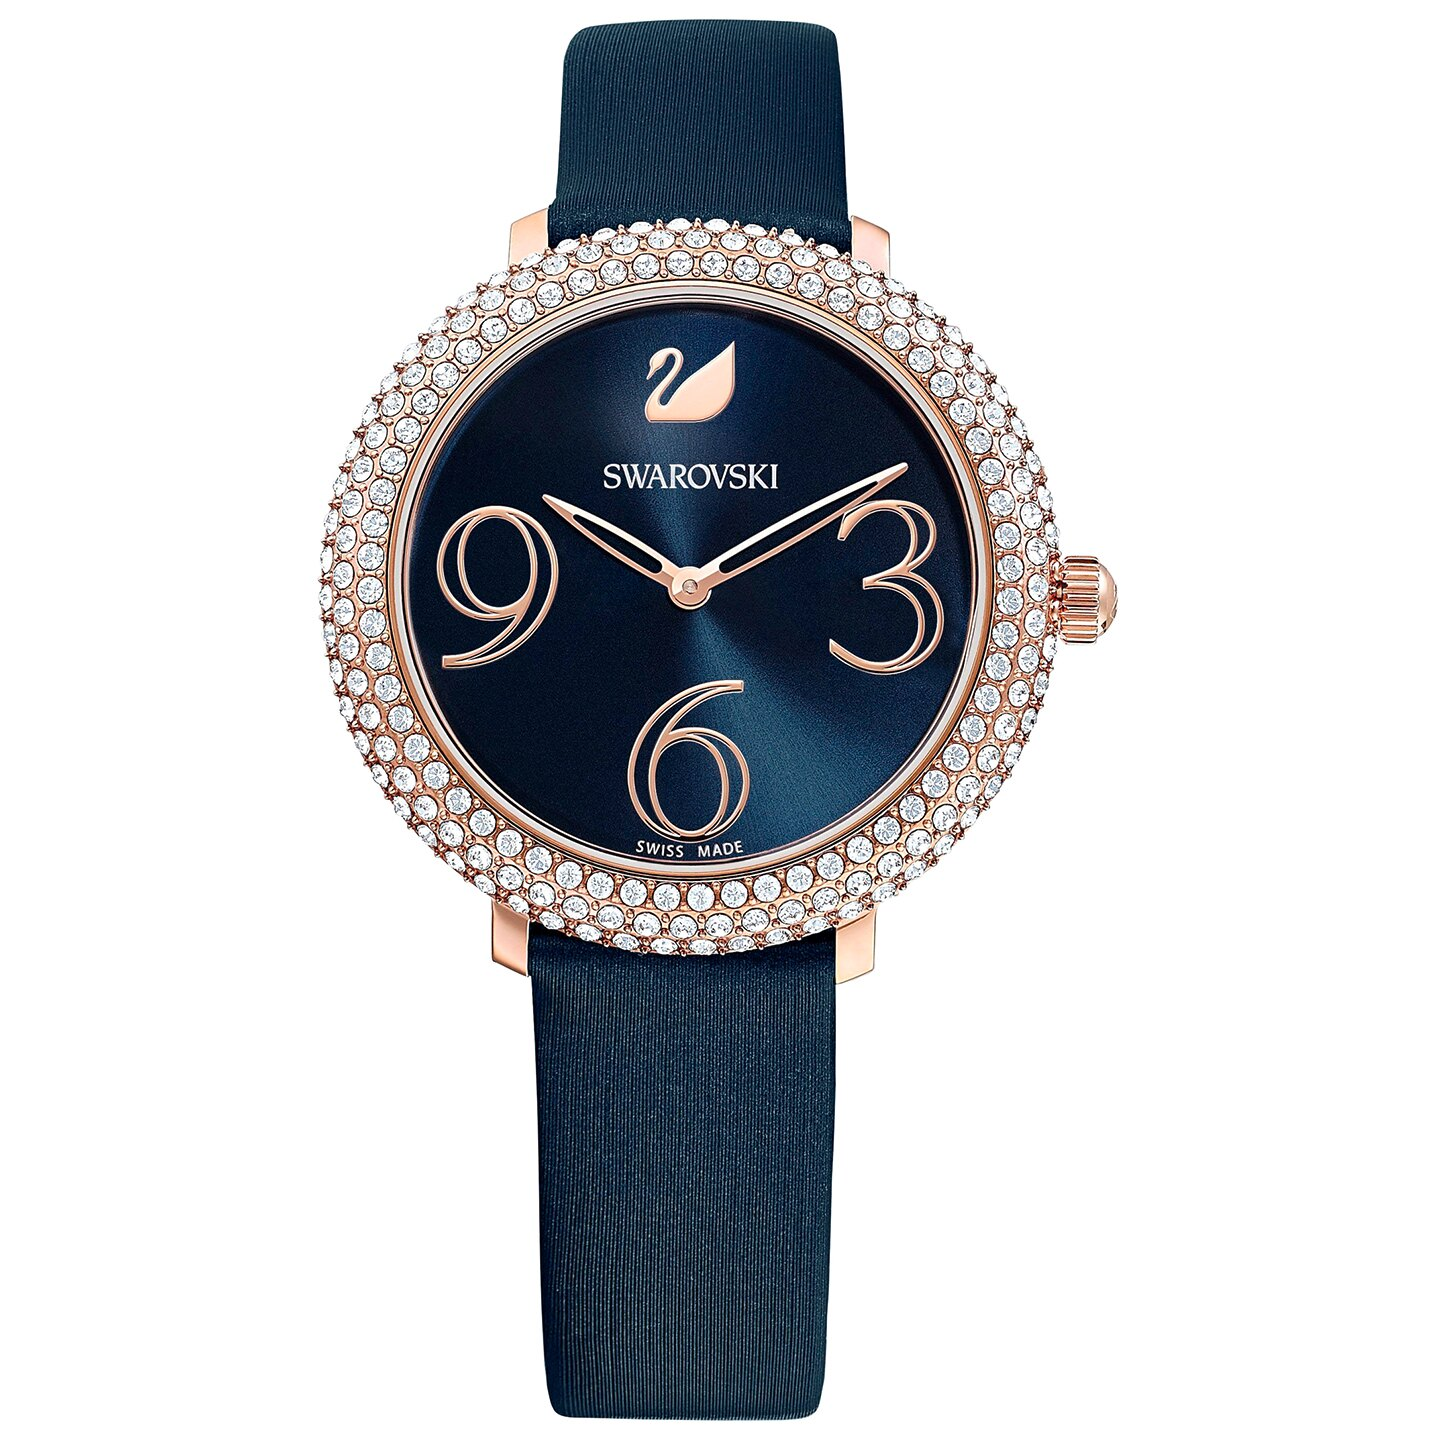 Swarovski Crystal Frost Watch - Leather Strap - Blue - Rose-gold Tone PVD - 5484061